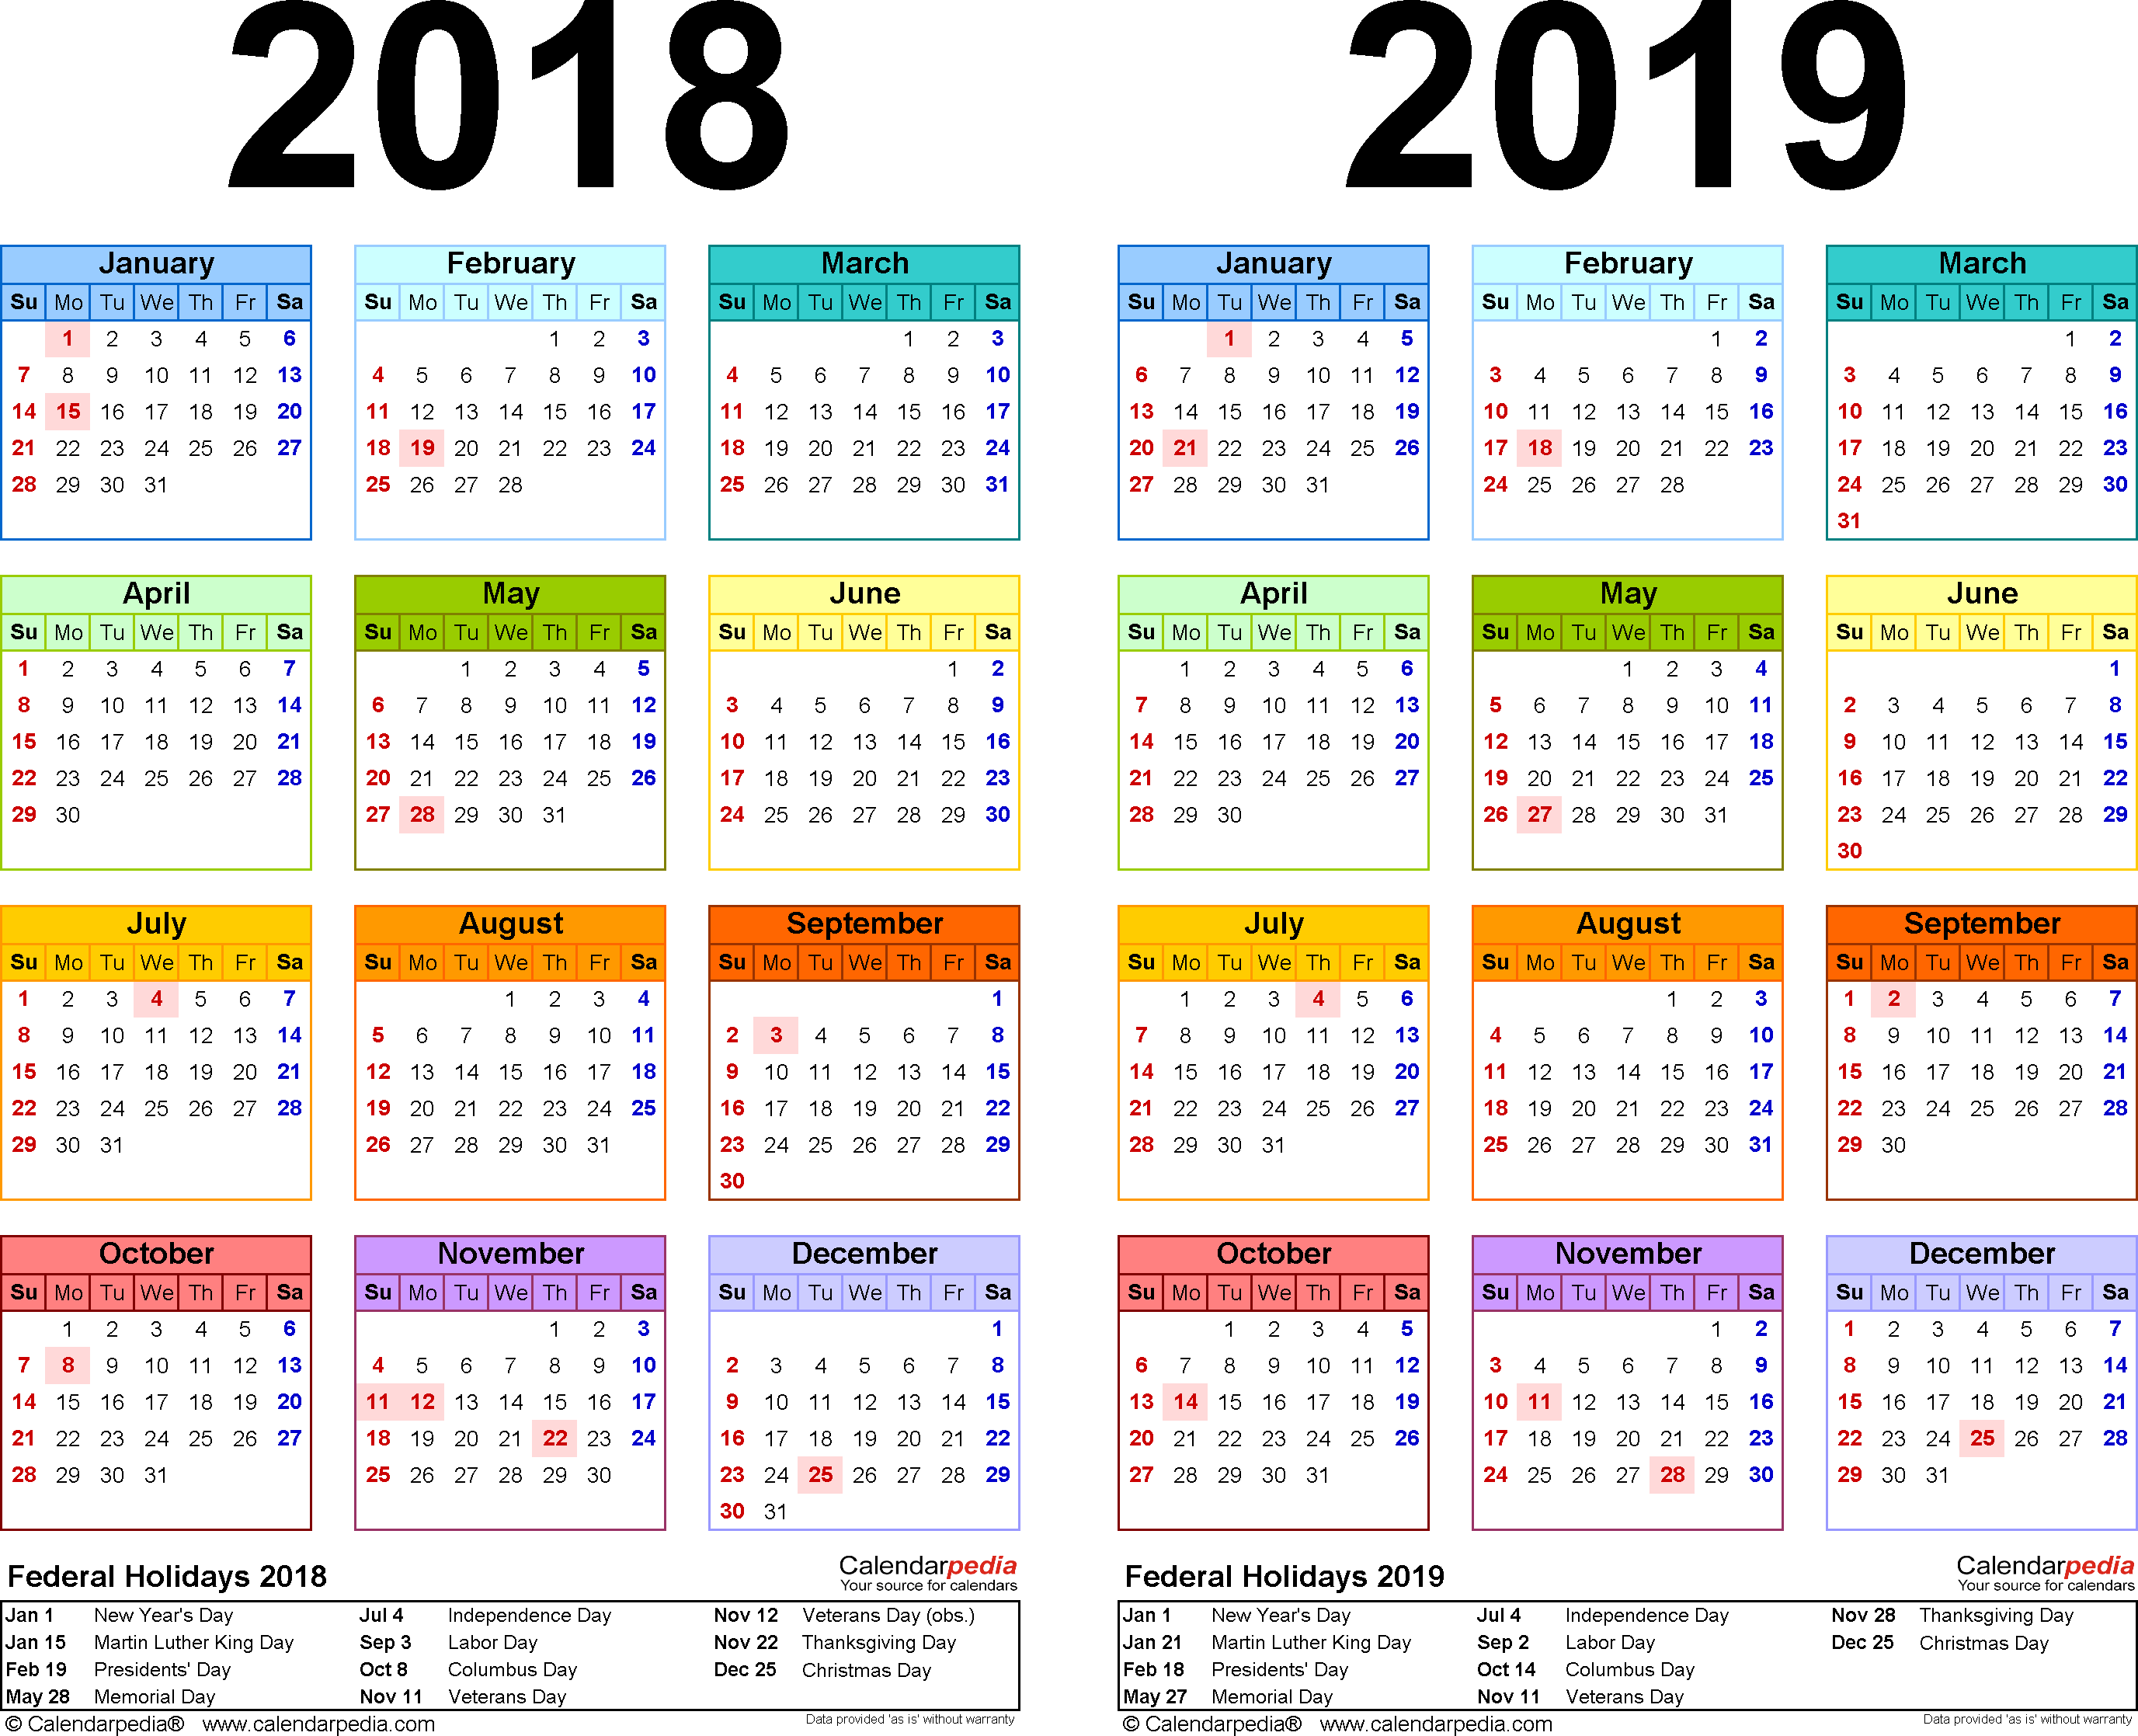 template 2 two year calendar 2018 2019 landscape orientation in full color